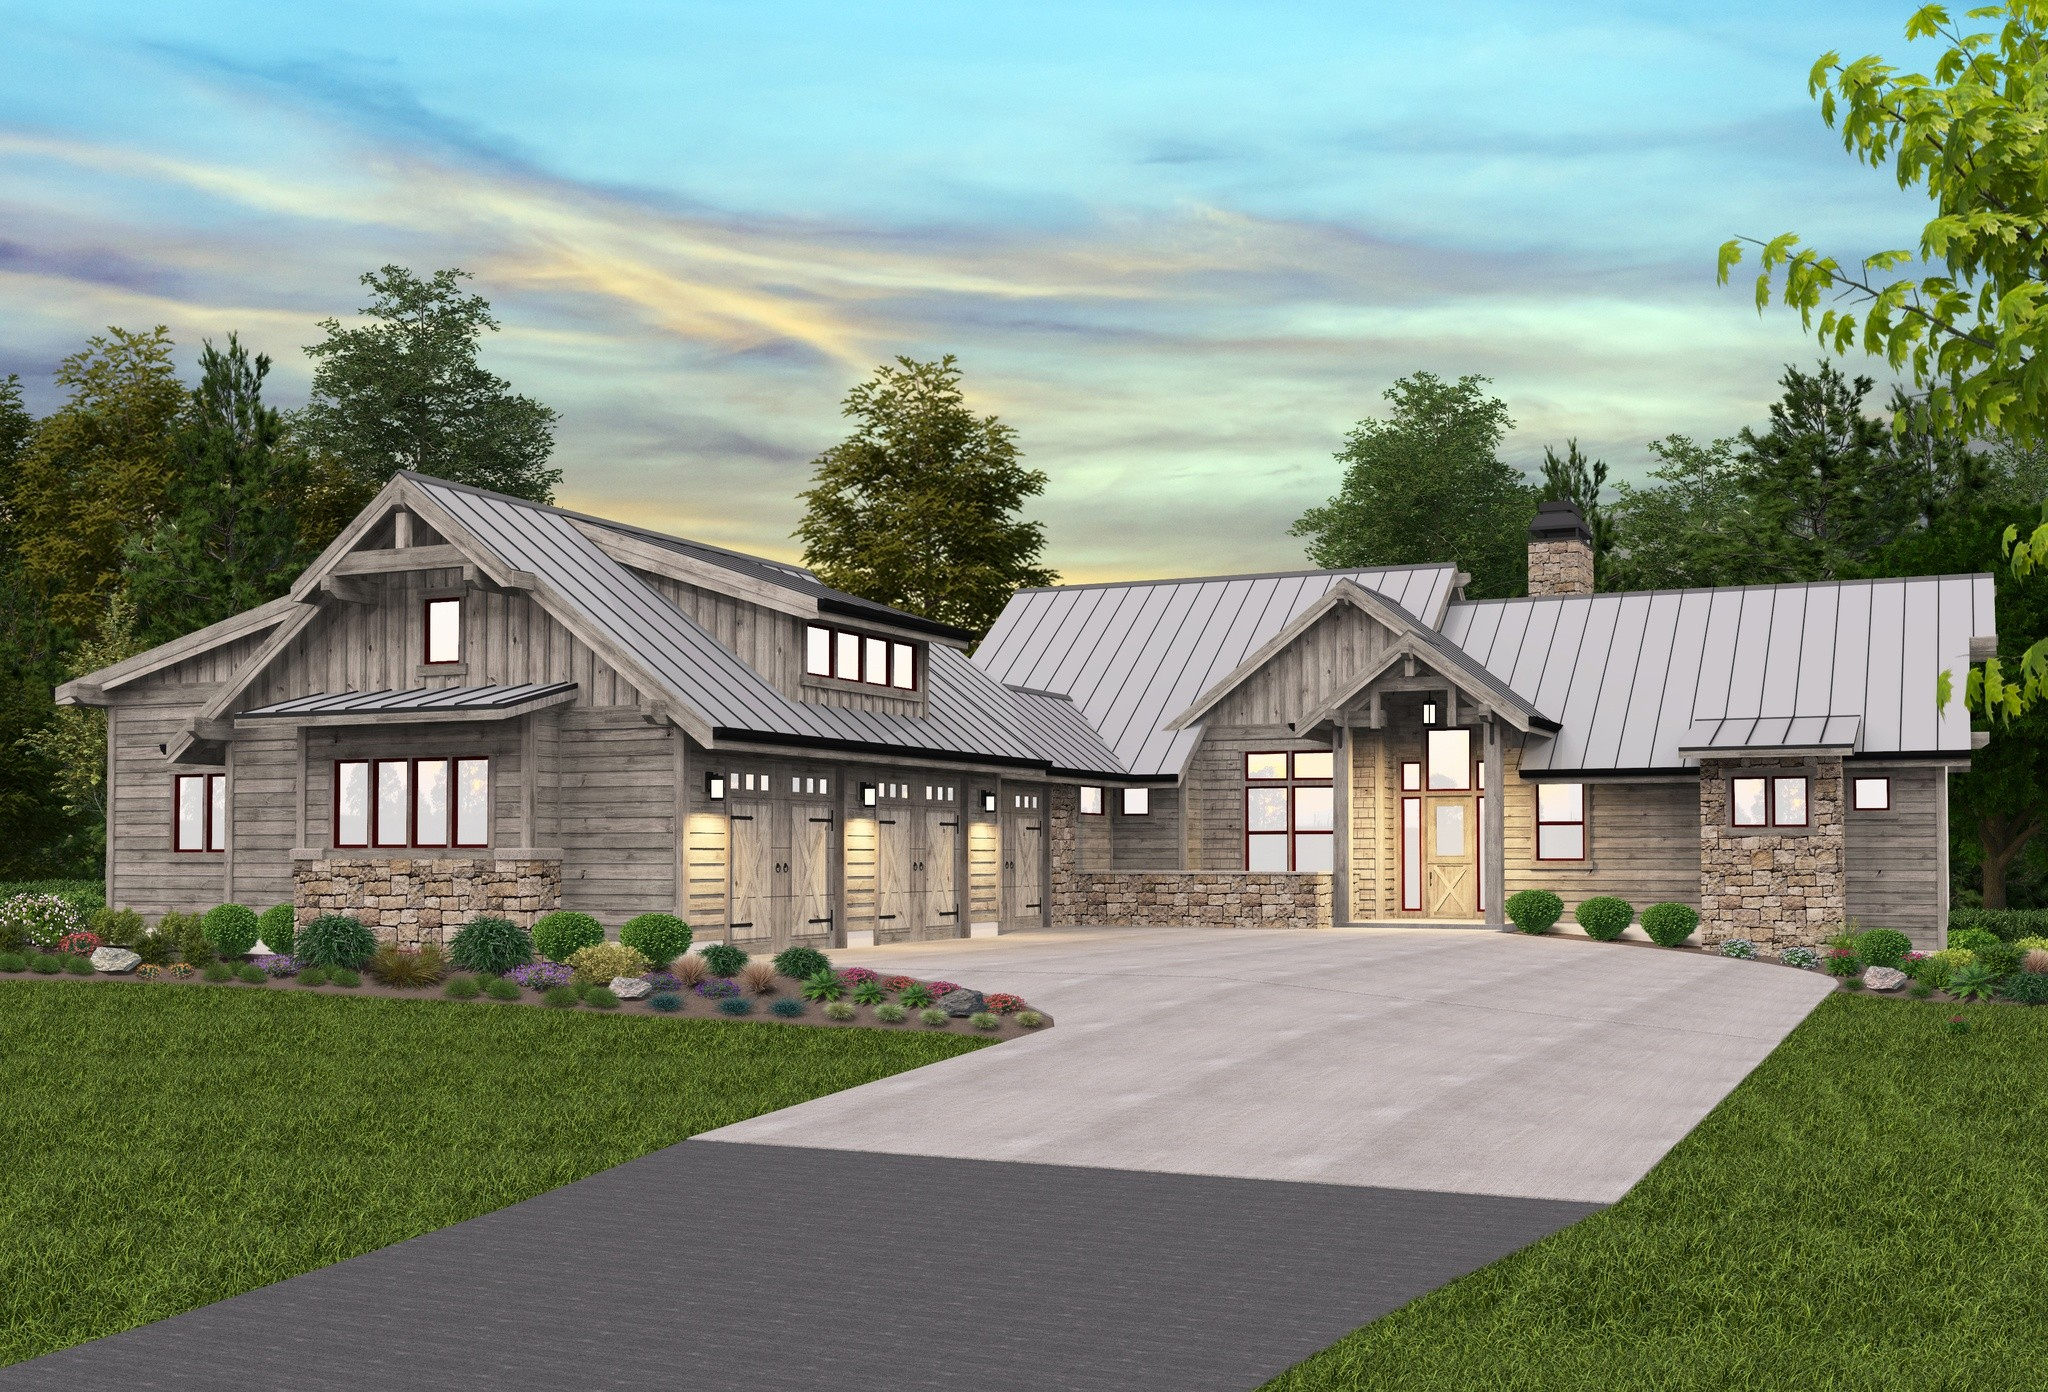 Adirondack | Lodge House Plan by Mark Stewart Home Design on rustic ranch house plans, best rustic house plans, dragonfly house plans, bel air house plans, exterior rustic house plans, beach house plans, rustic stone house plans, rustic house plans with wrap-around porches, rustic colonial house plans, rustic house plans with porches and garages, celtic house plans, rustic open kitchen and great room, pioneer style house plans, houses ranch style house plans, rustic mediterranean house plans, rustic cabin plans, rustic traditional house plans, rustic loft house plans, rustic house house plans, small rustic house plans,